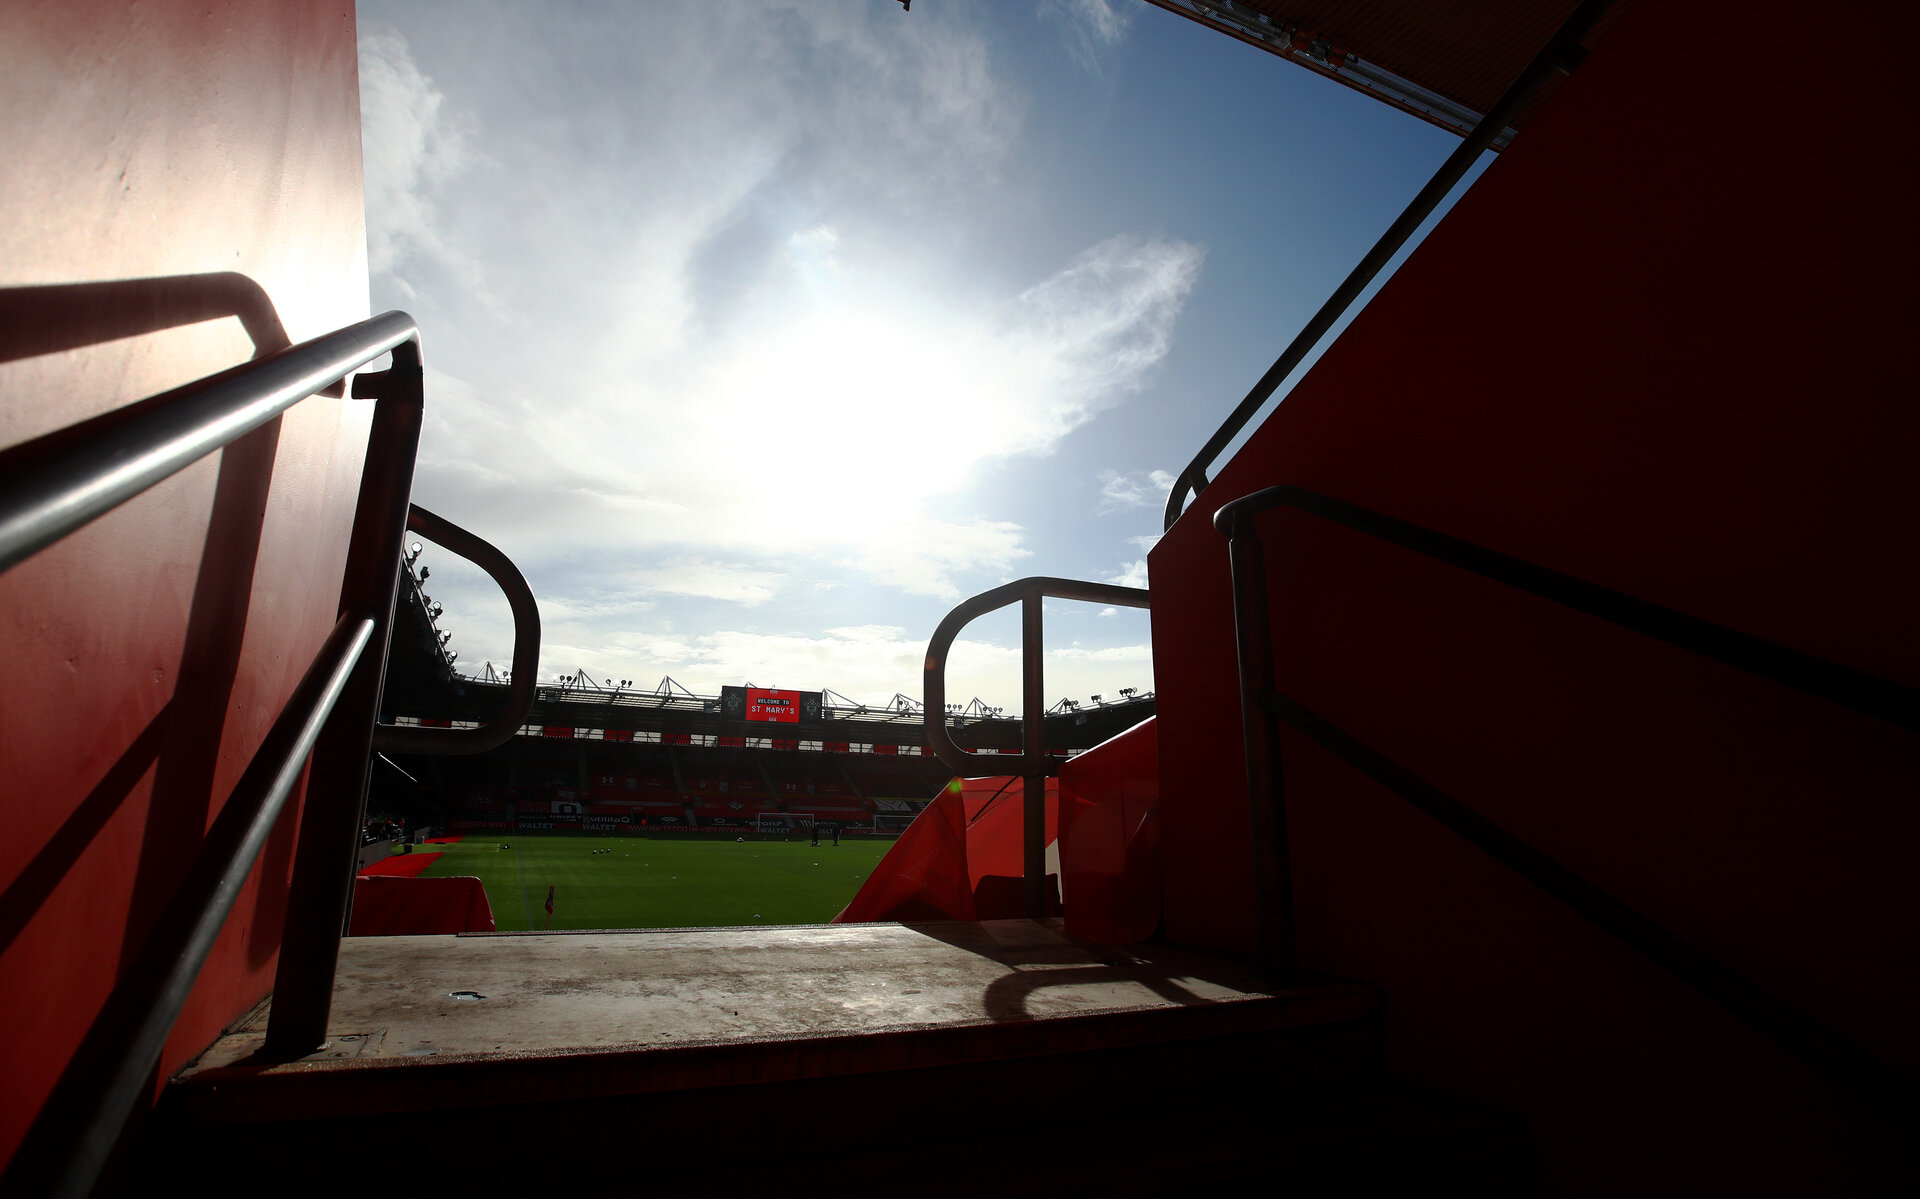 SOUTHAMPTON, ENGLAND - OCTOBER 25: A general view ahead of the Premier League match between Southampton and Everton at St Mary's Stadium on October 25, 2020 in Southampton, England. Sporting stadiums around the UK remain under strict restrictions due to the Coronavirus Pandemic as Government social distancing laws prohibit fans inside venues resulting in games being played behind closed doors. (Photo by Matt Watson/Southampton FC via Getty Images)